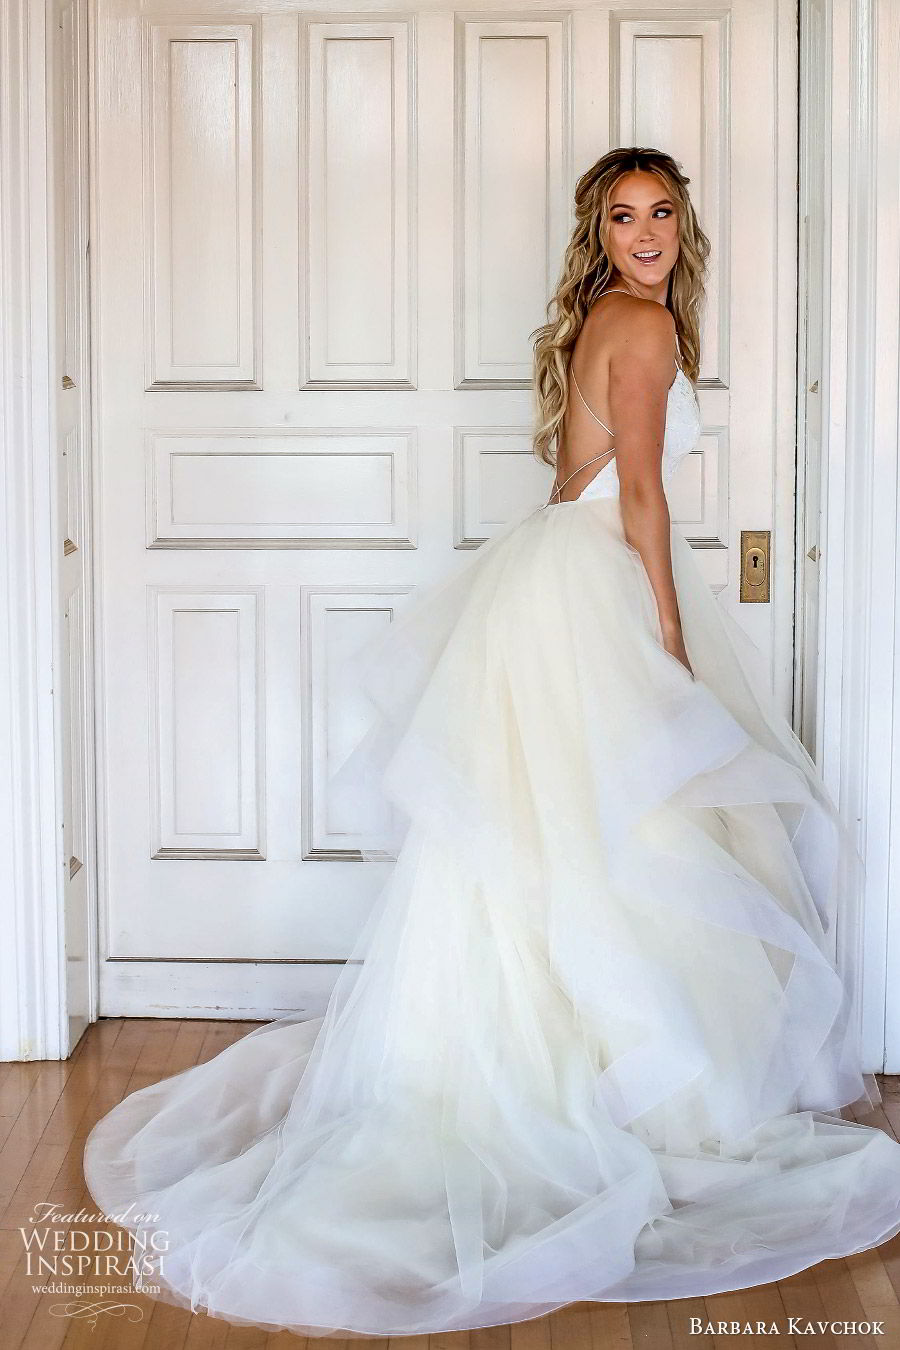 barbara kavchok fall 2019 bridal sleeveless thin straps sweetheart neckline lace sheath wedding dress (9) bv ball tiered gown overskirt chapel train low back elegant romantic